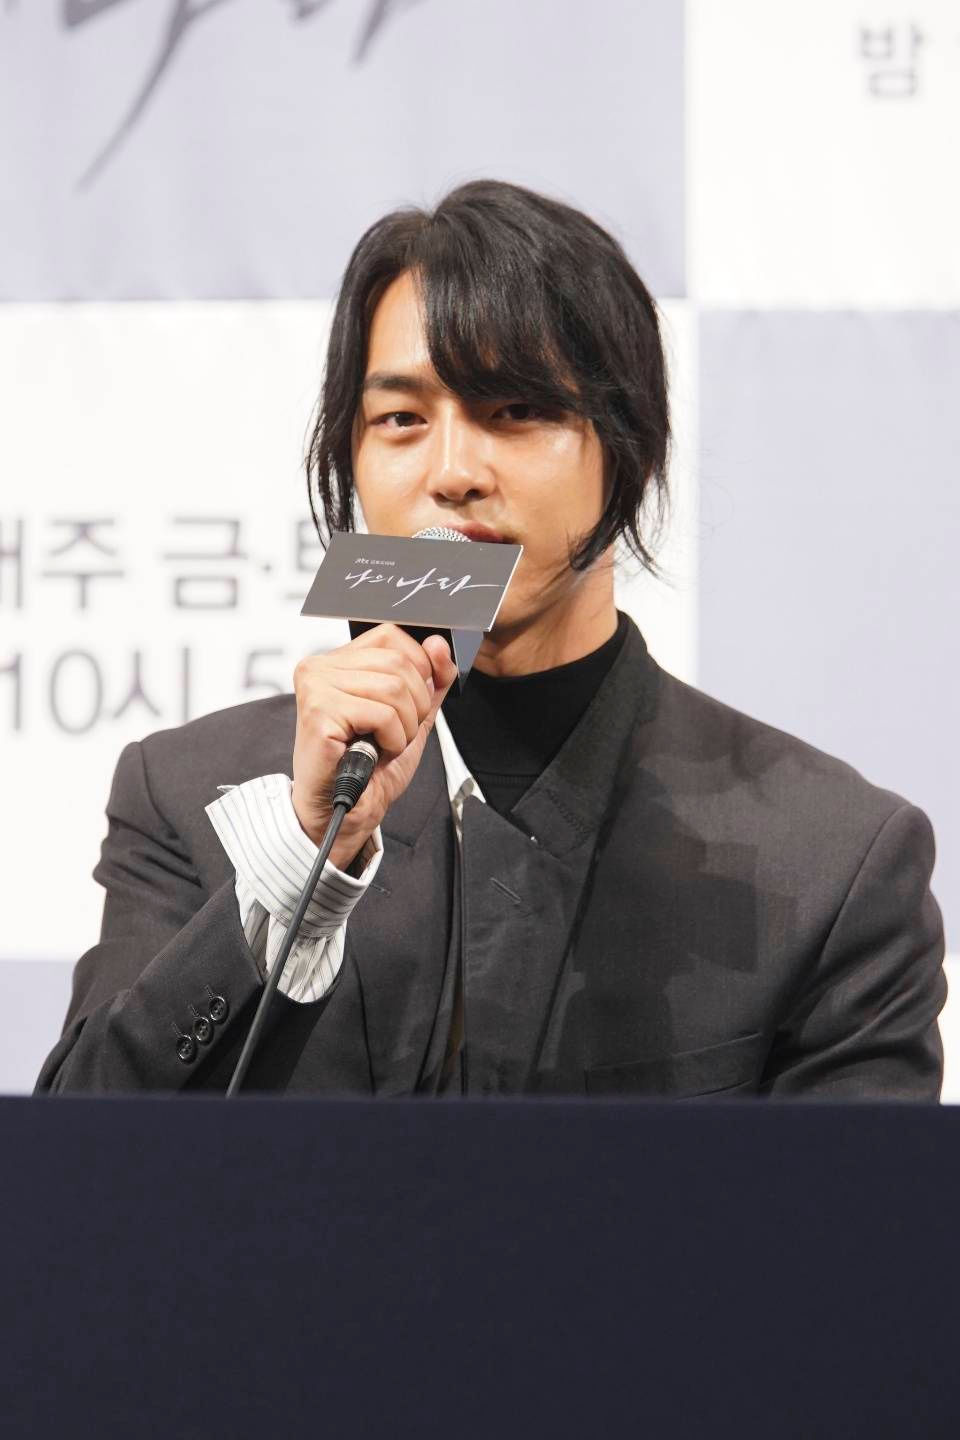 Yang Se-jong at the My Country press conference